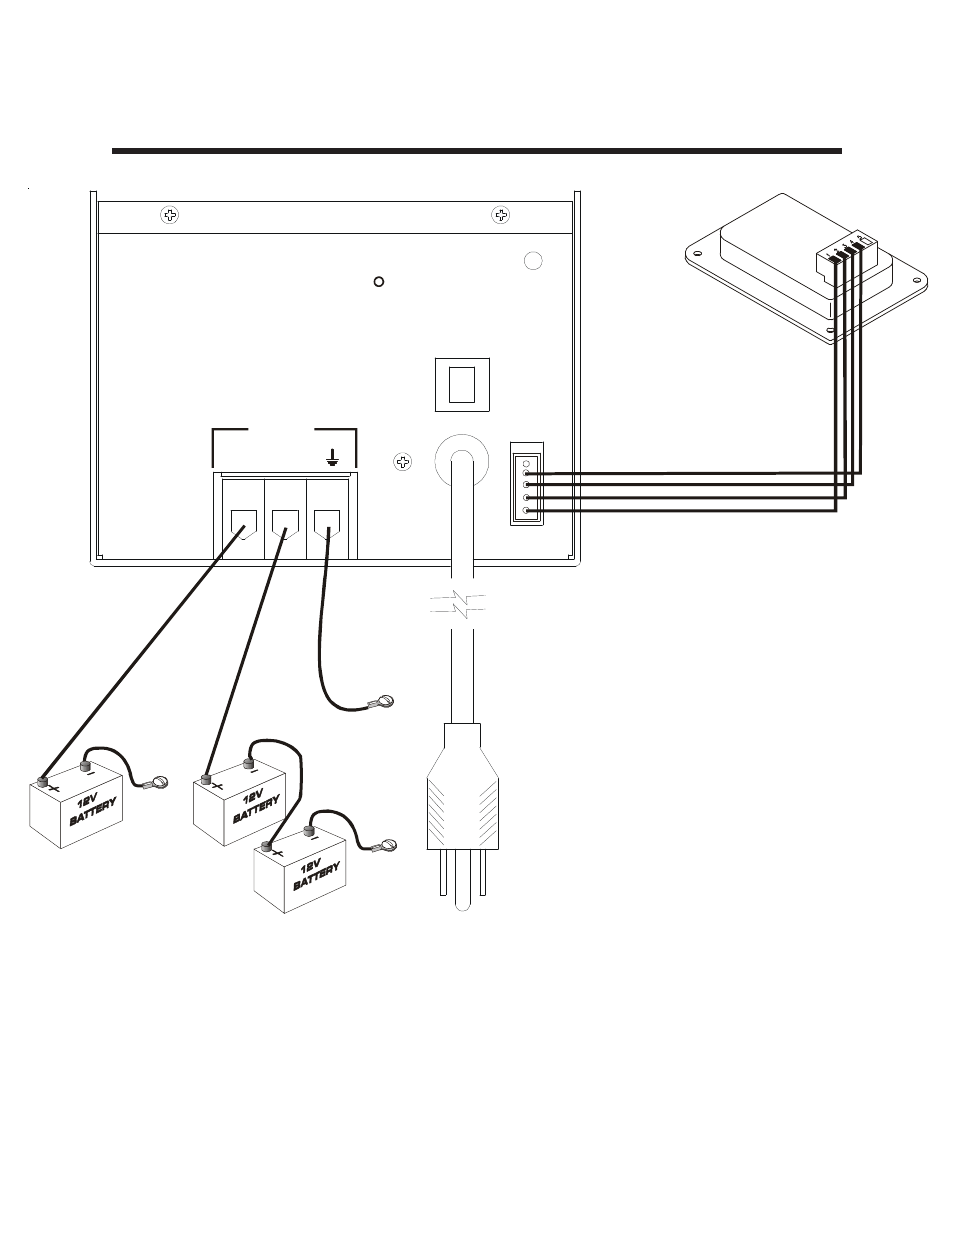 Auto Charge 24 12 Ho Installation Wiring Diagram Kussmaul Electronics Digram Background Image